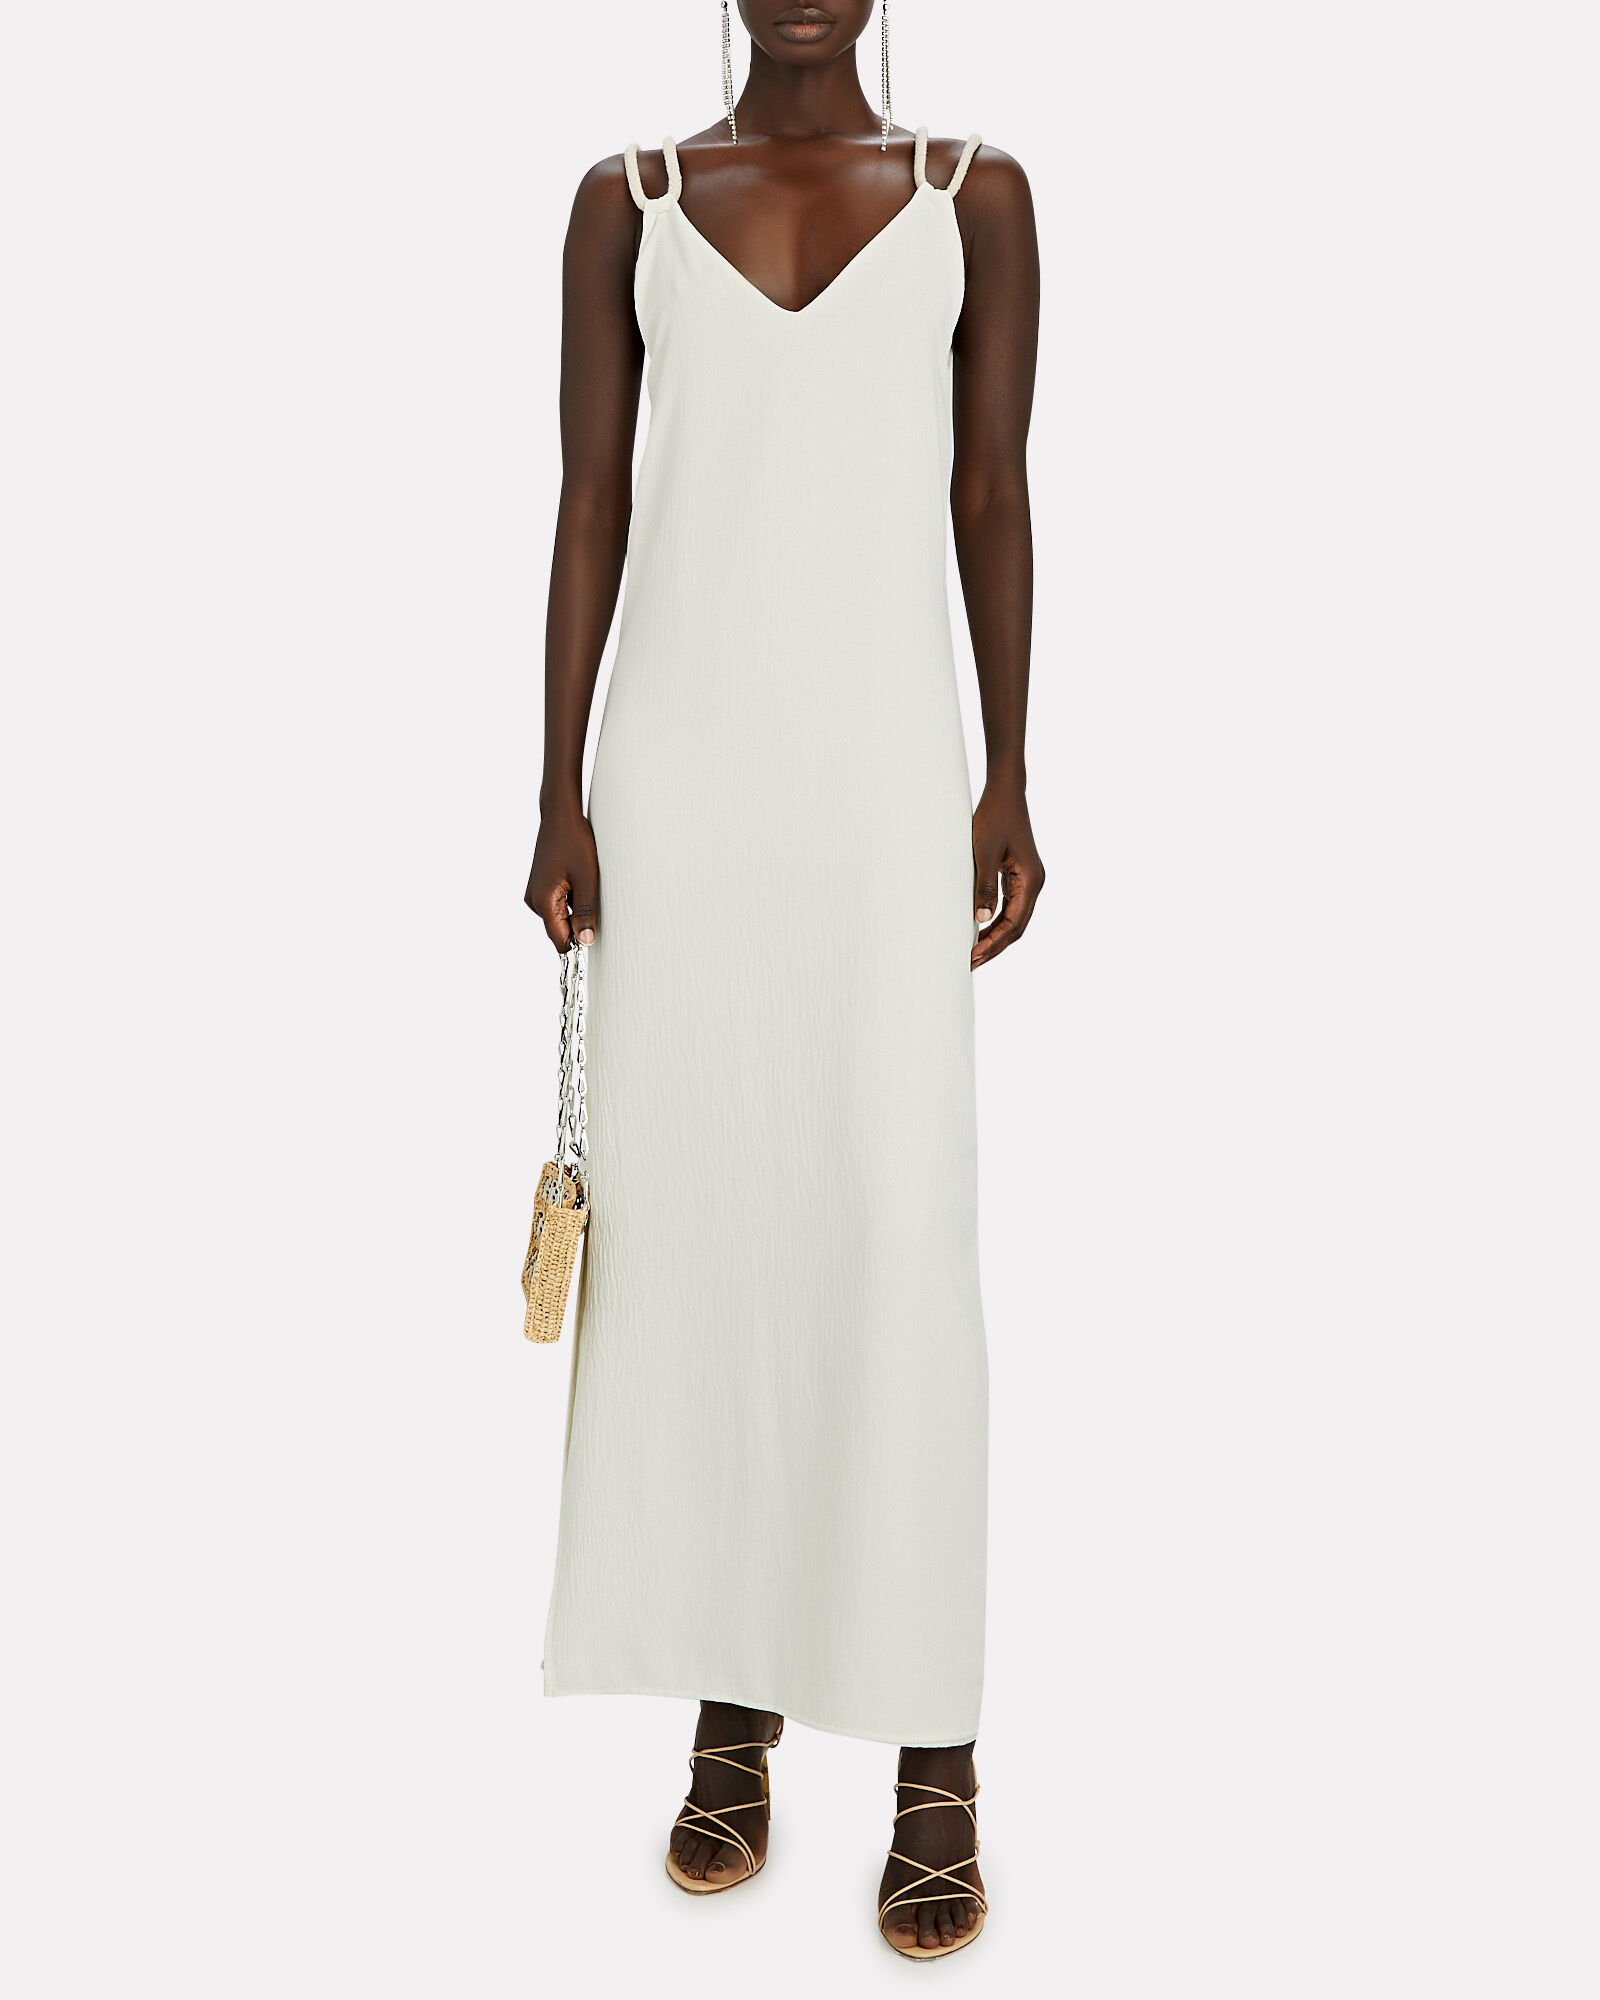 Velero Open-Back Maxi Dress, IVORY, hi-res